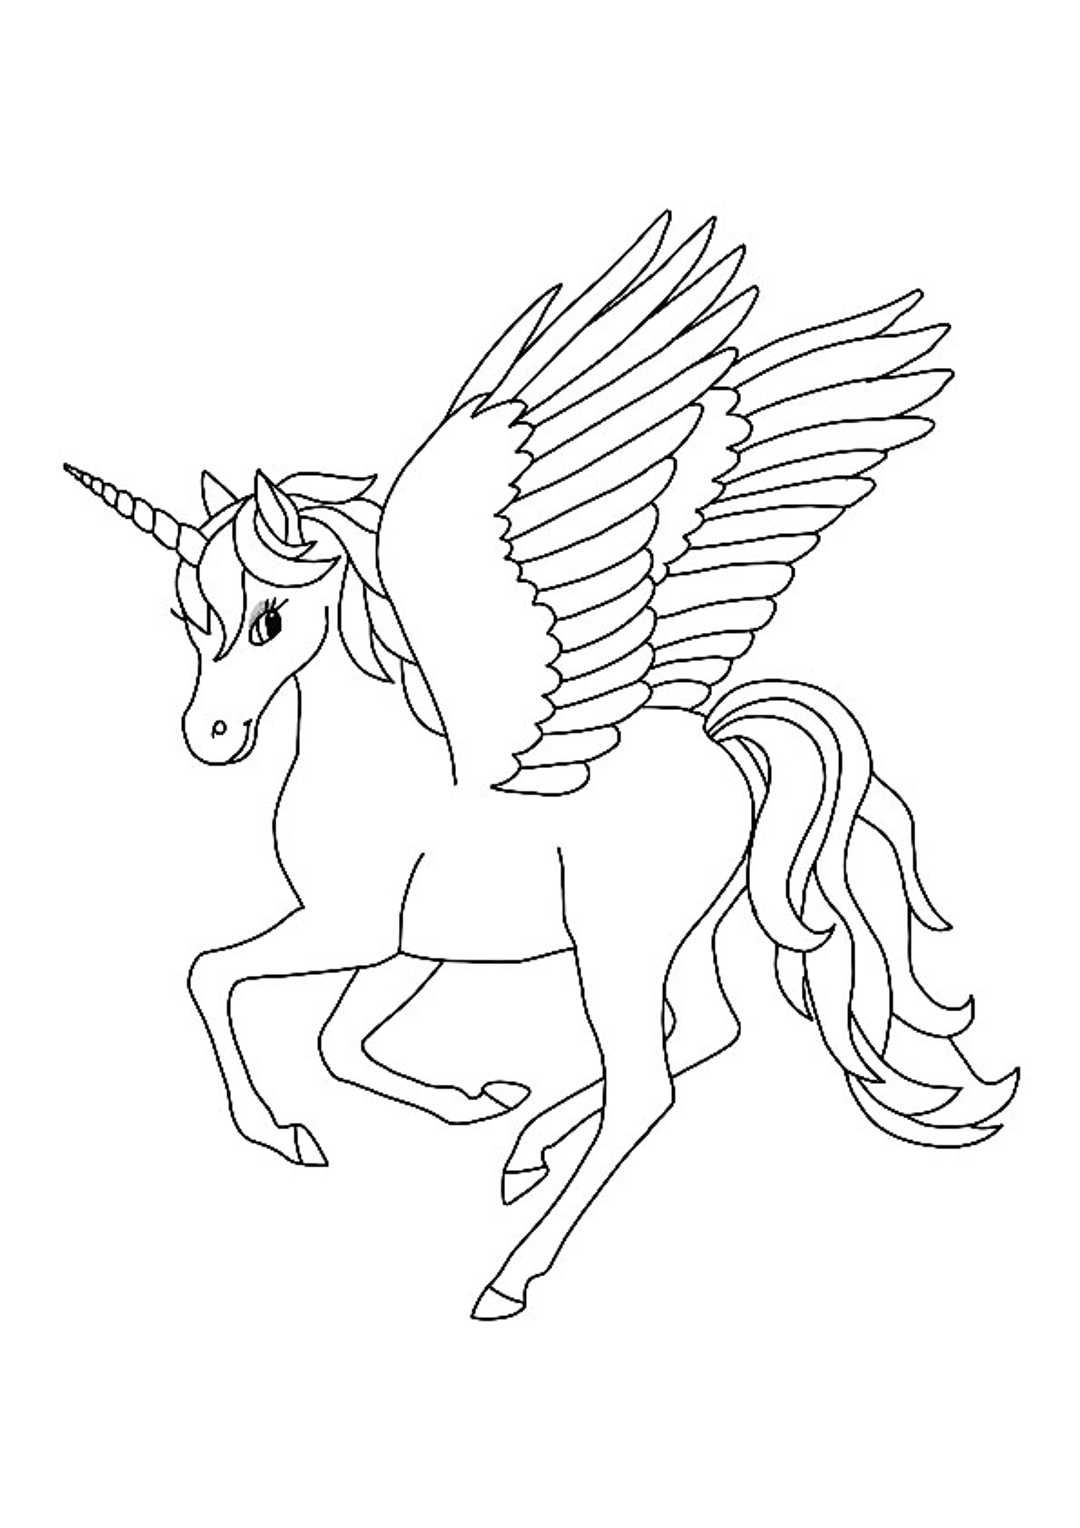 Winged Unicorn Coloring Pages Unicorn Coloring Pages Free Printable Coloring Sheets Mermaid Coloring Pages